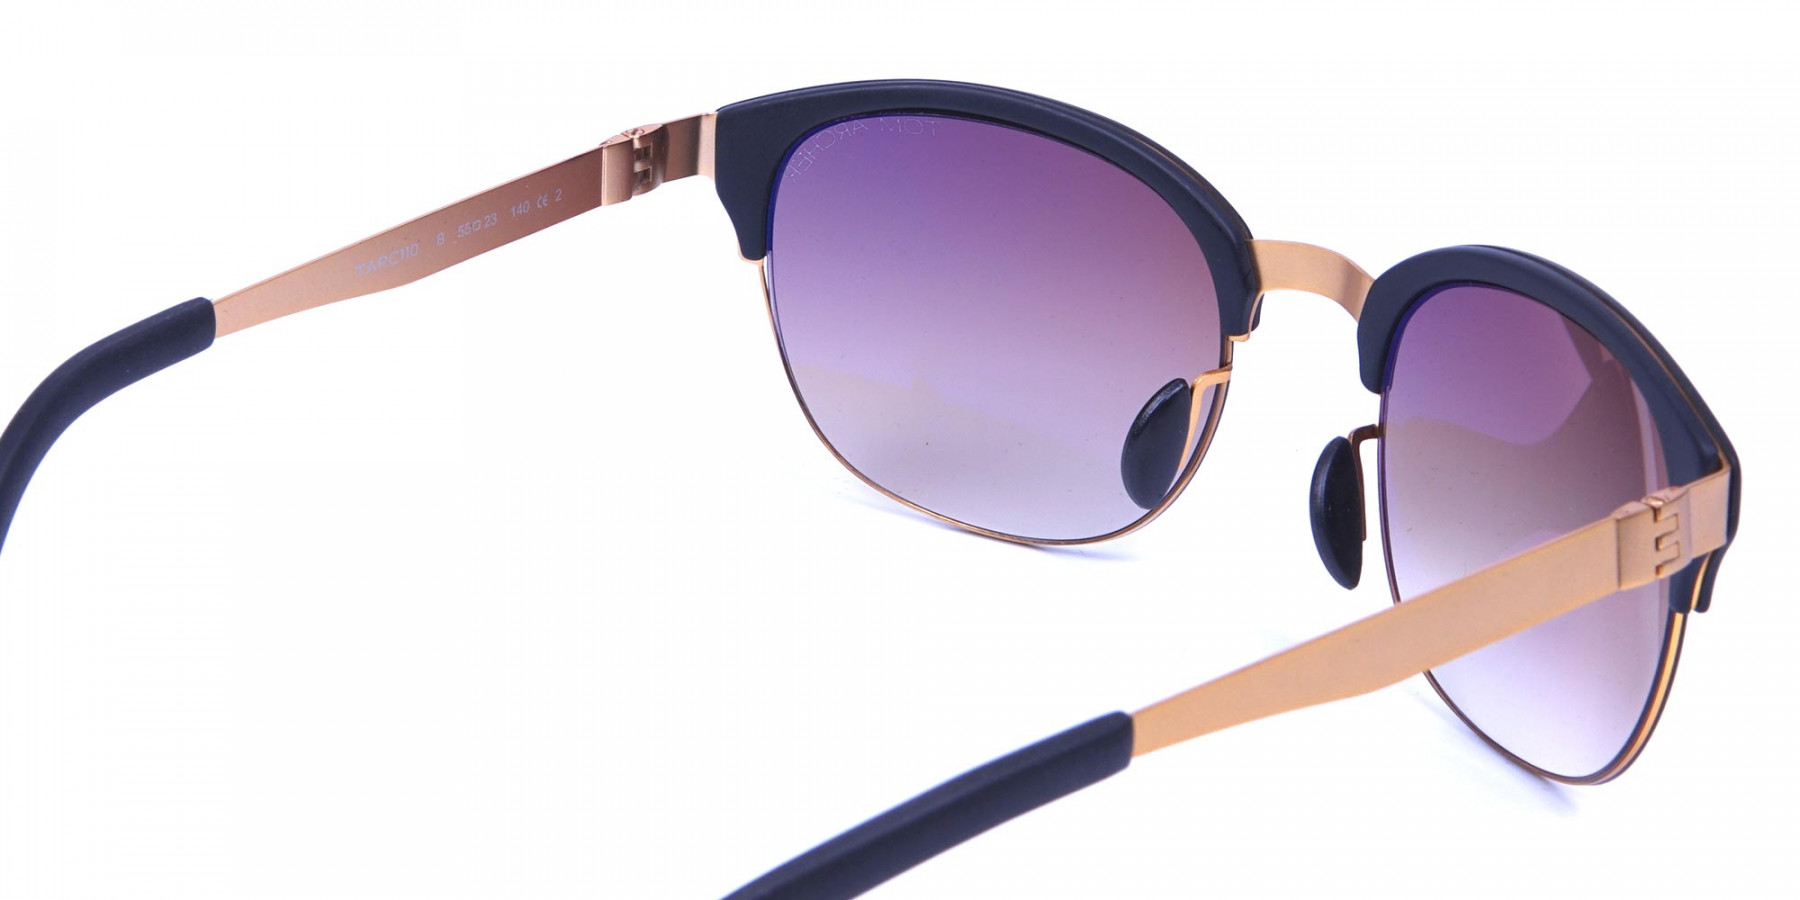 Gold Frame Sunglasses with Black Accents -2